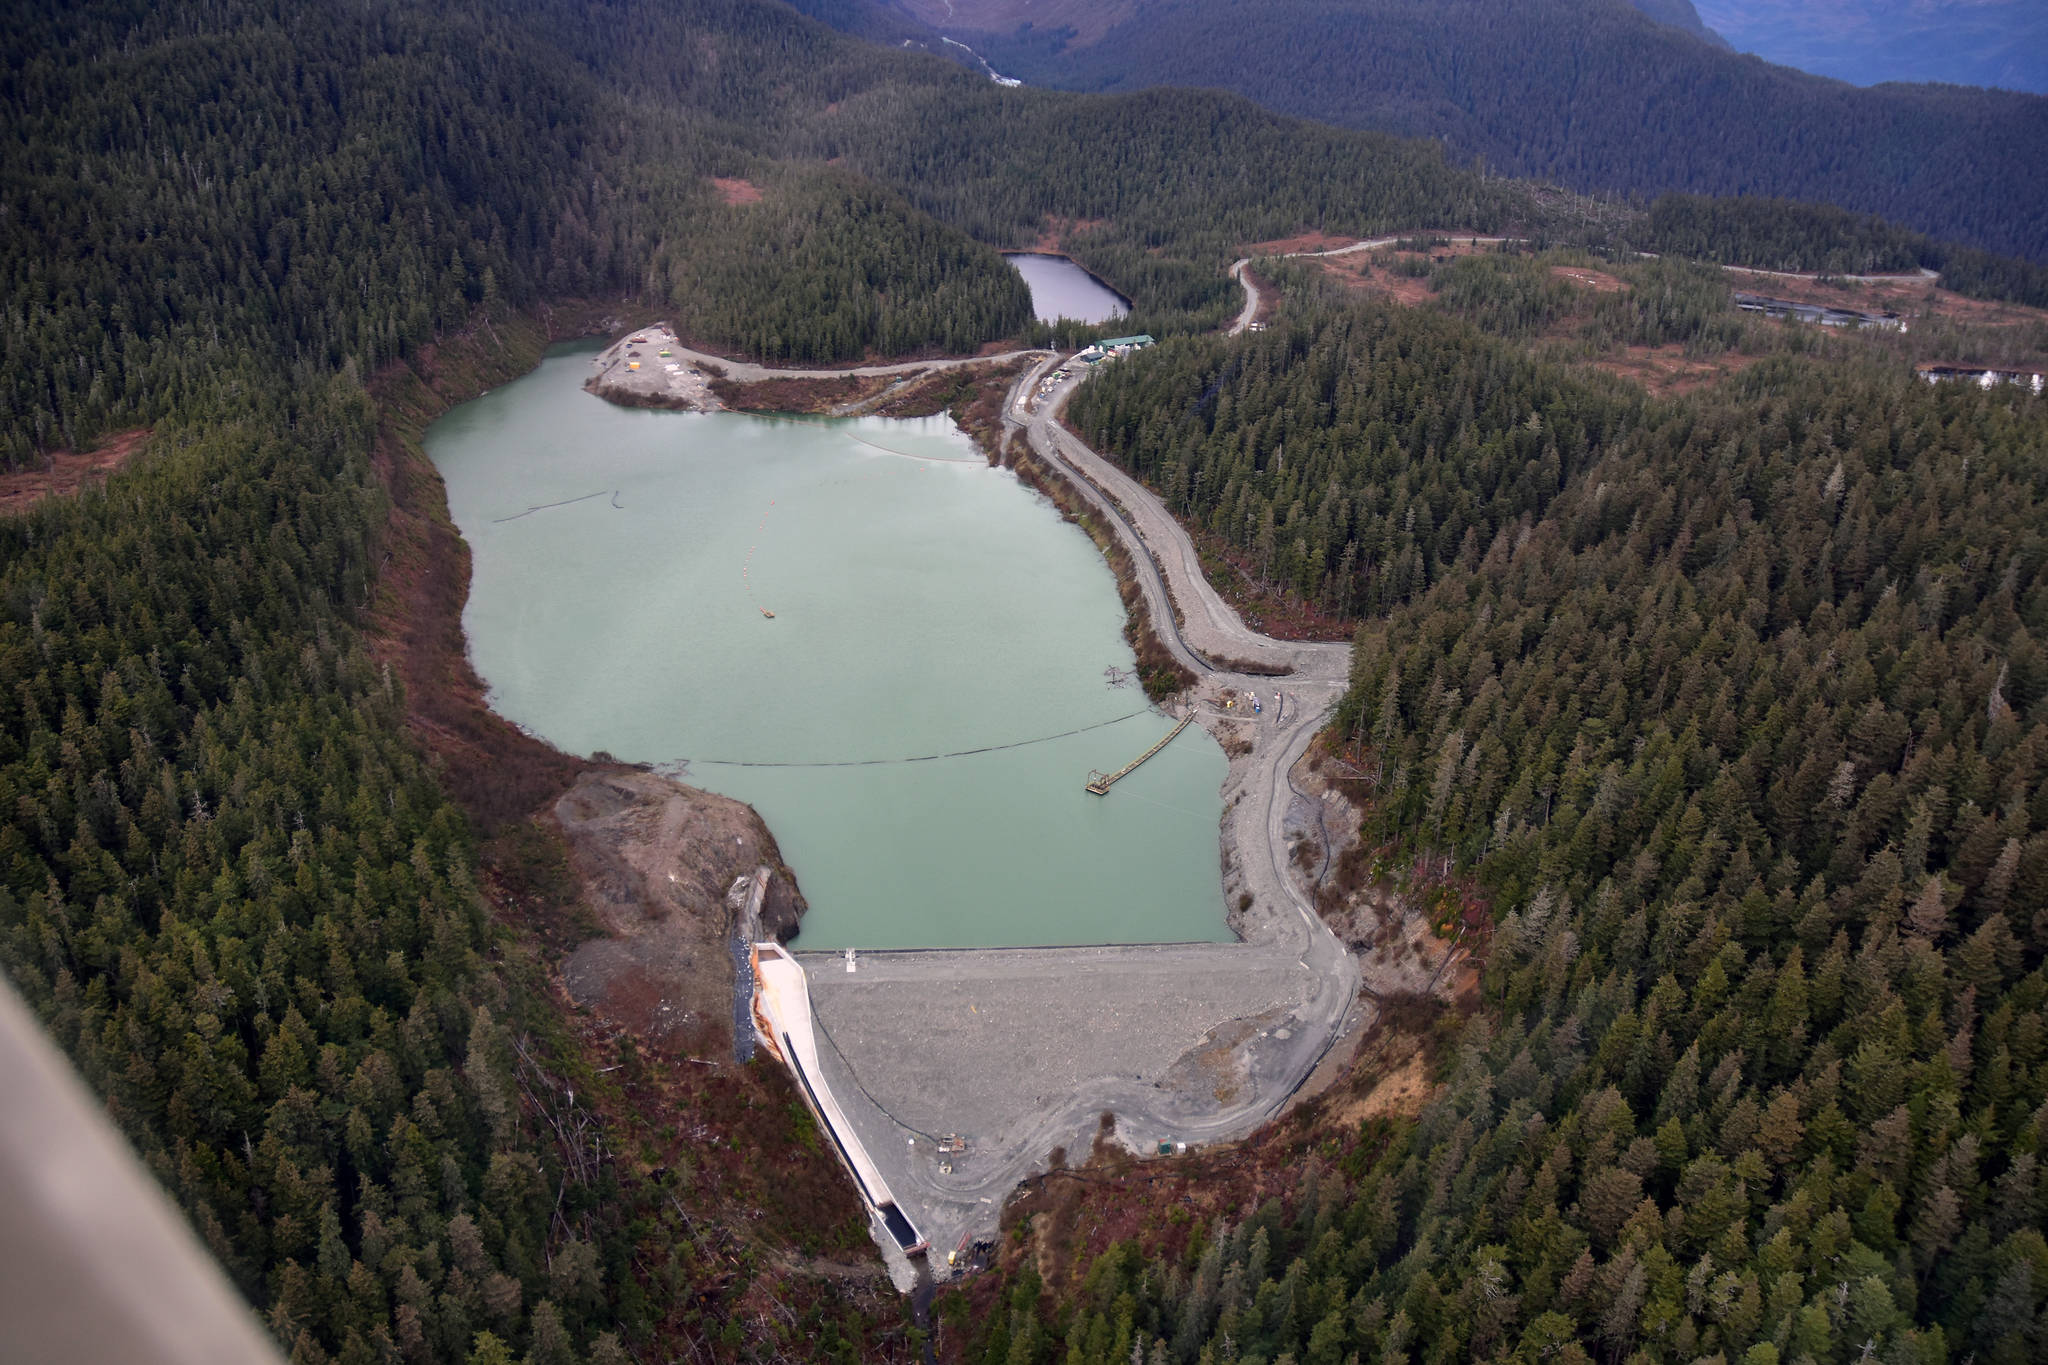 Peter Segall / Juneau Empire File  Coeur Alaska will likely be able to expand their facilities at the Kensington Gold Mine including the Tailing Treatment Facility, seen here in this October 2019 photo, after the U.S. Forest Service announced it intends to approve the company's proposal to extend the mine's life by 10 years. Operations were expected to end in 2023 under a plan approved in 2005.